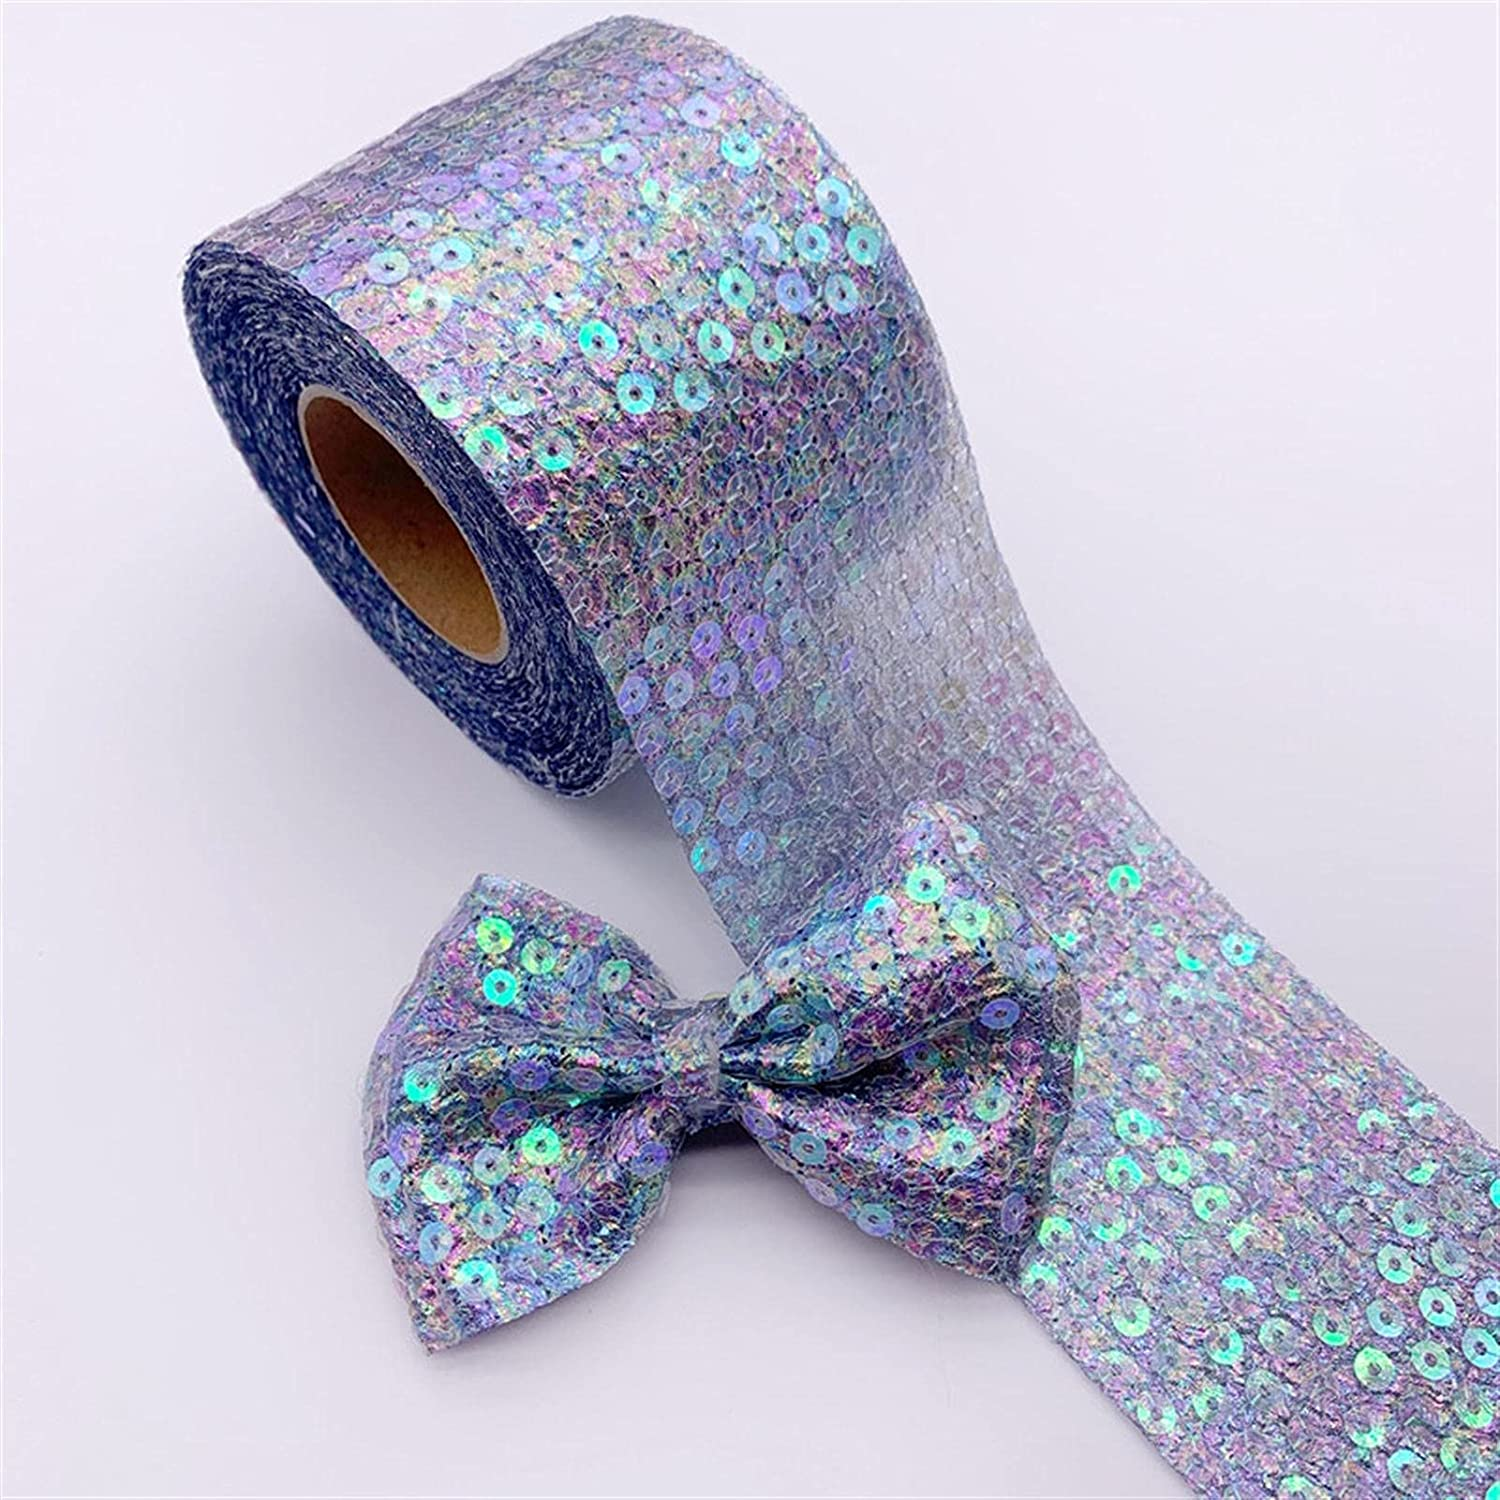 GMMDXD 5 Yards Japan's largest assortment Seersucker Coloful Rib Embroidery Organza Sequins Shipping included